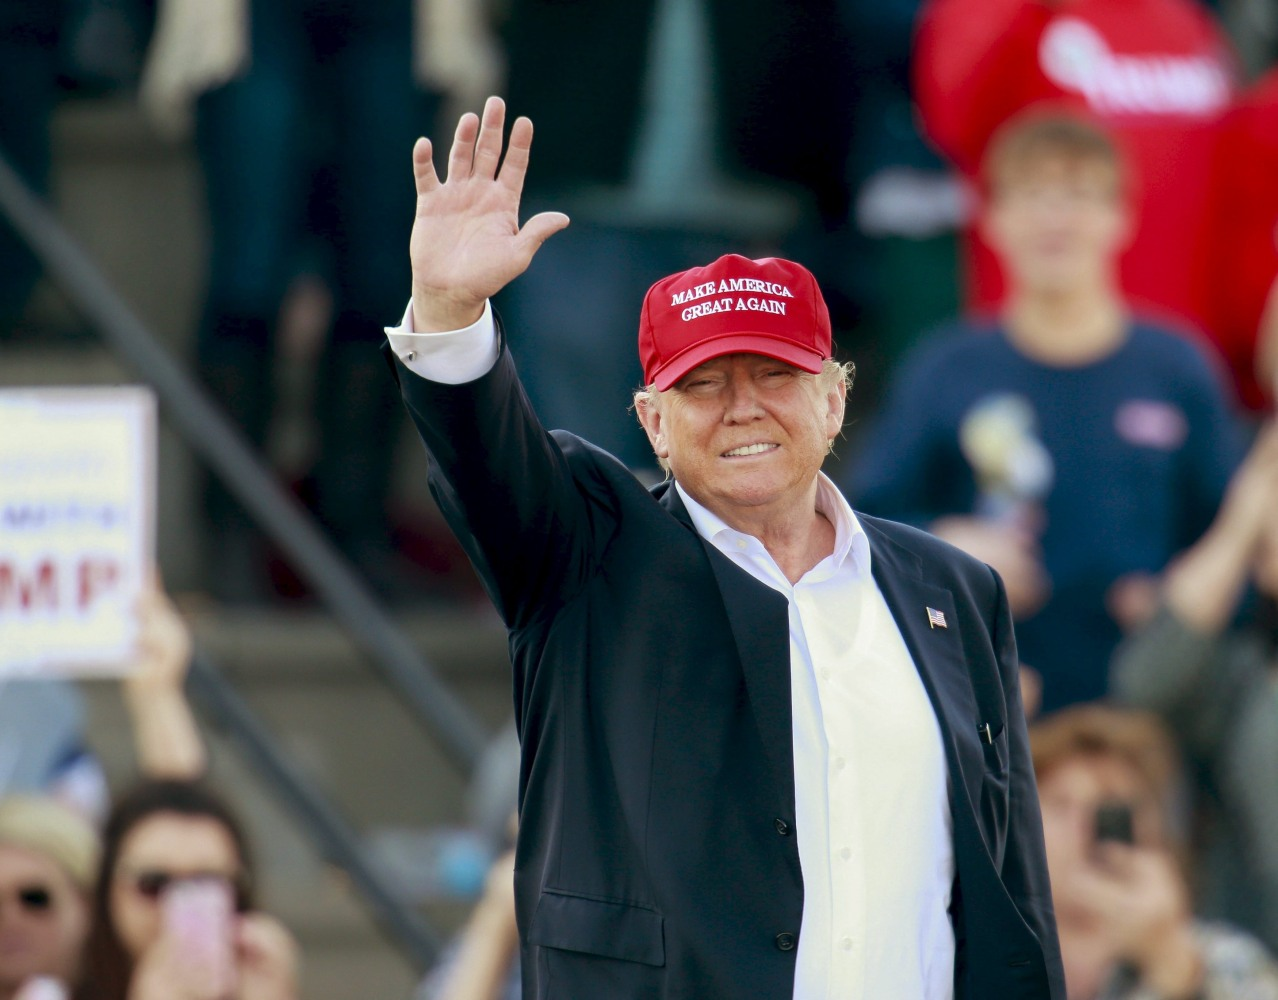 Donald Trump waves to supporters at a rally in Madison, Alabama, on ...